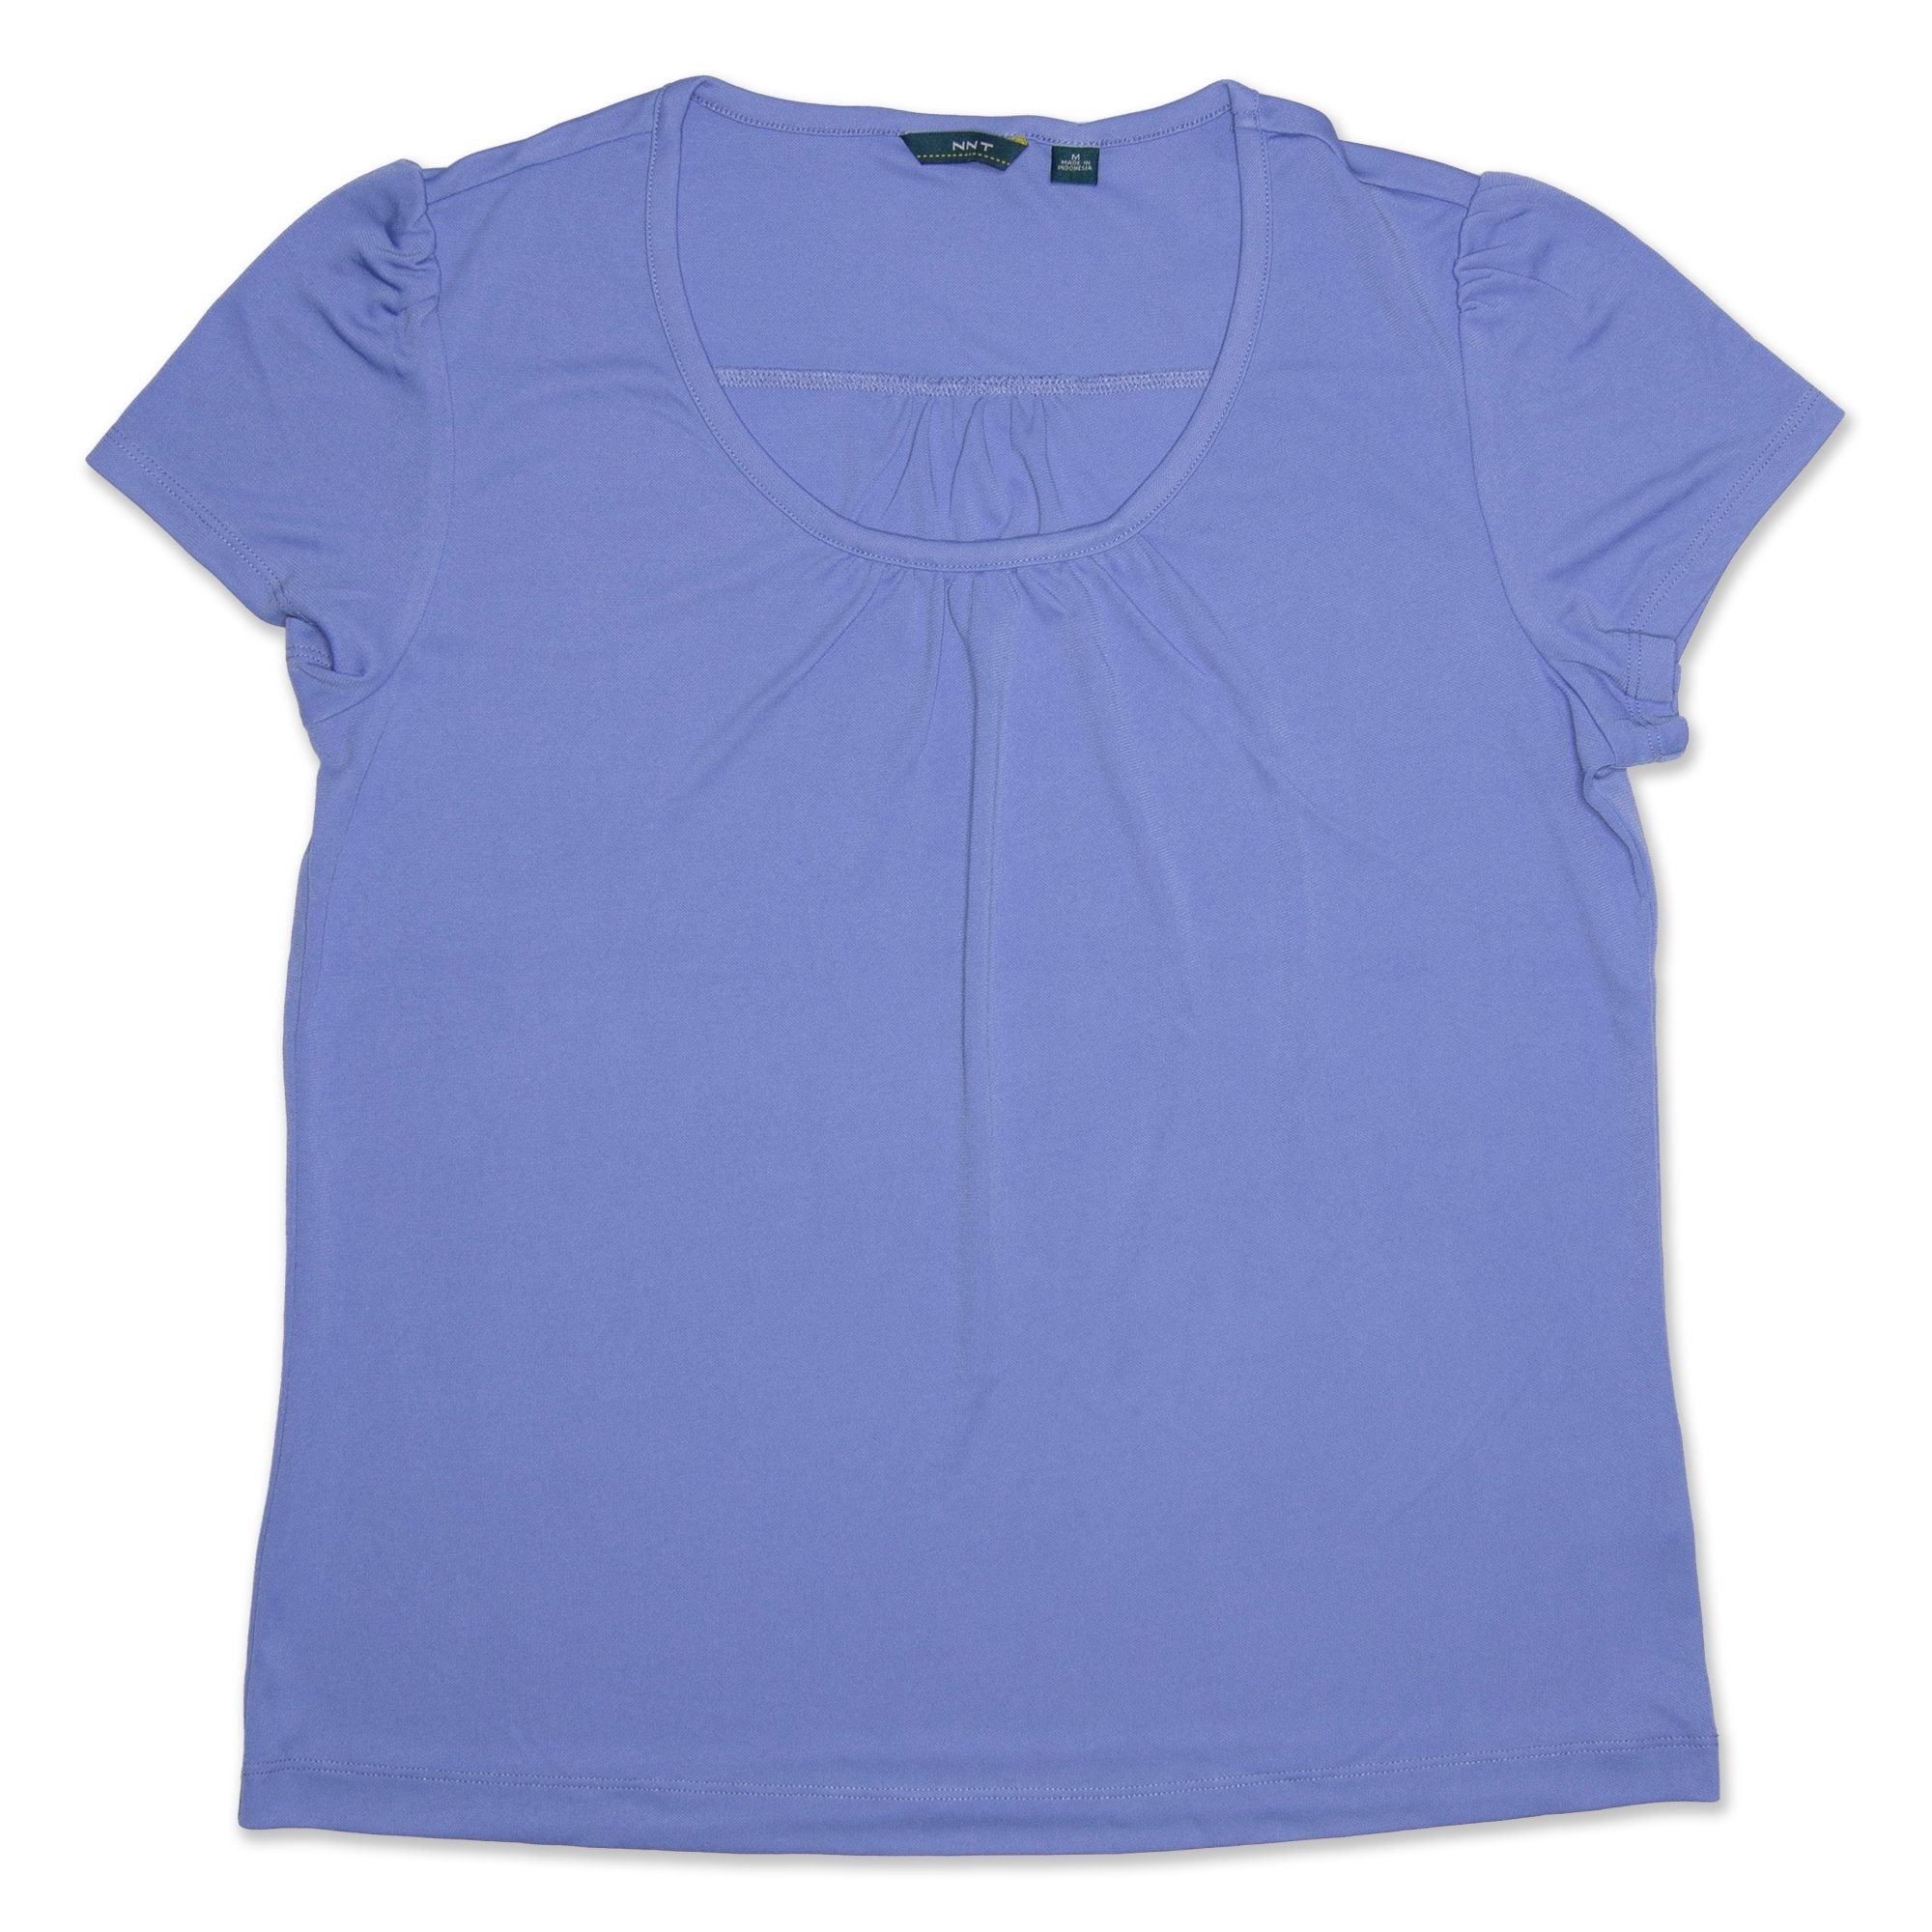 NNT Round Neck Short Sleeve Women's Top - Blue Workwear NNT